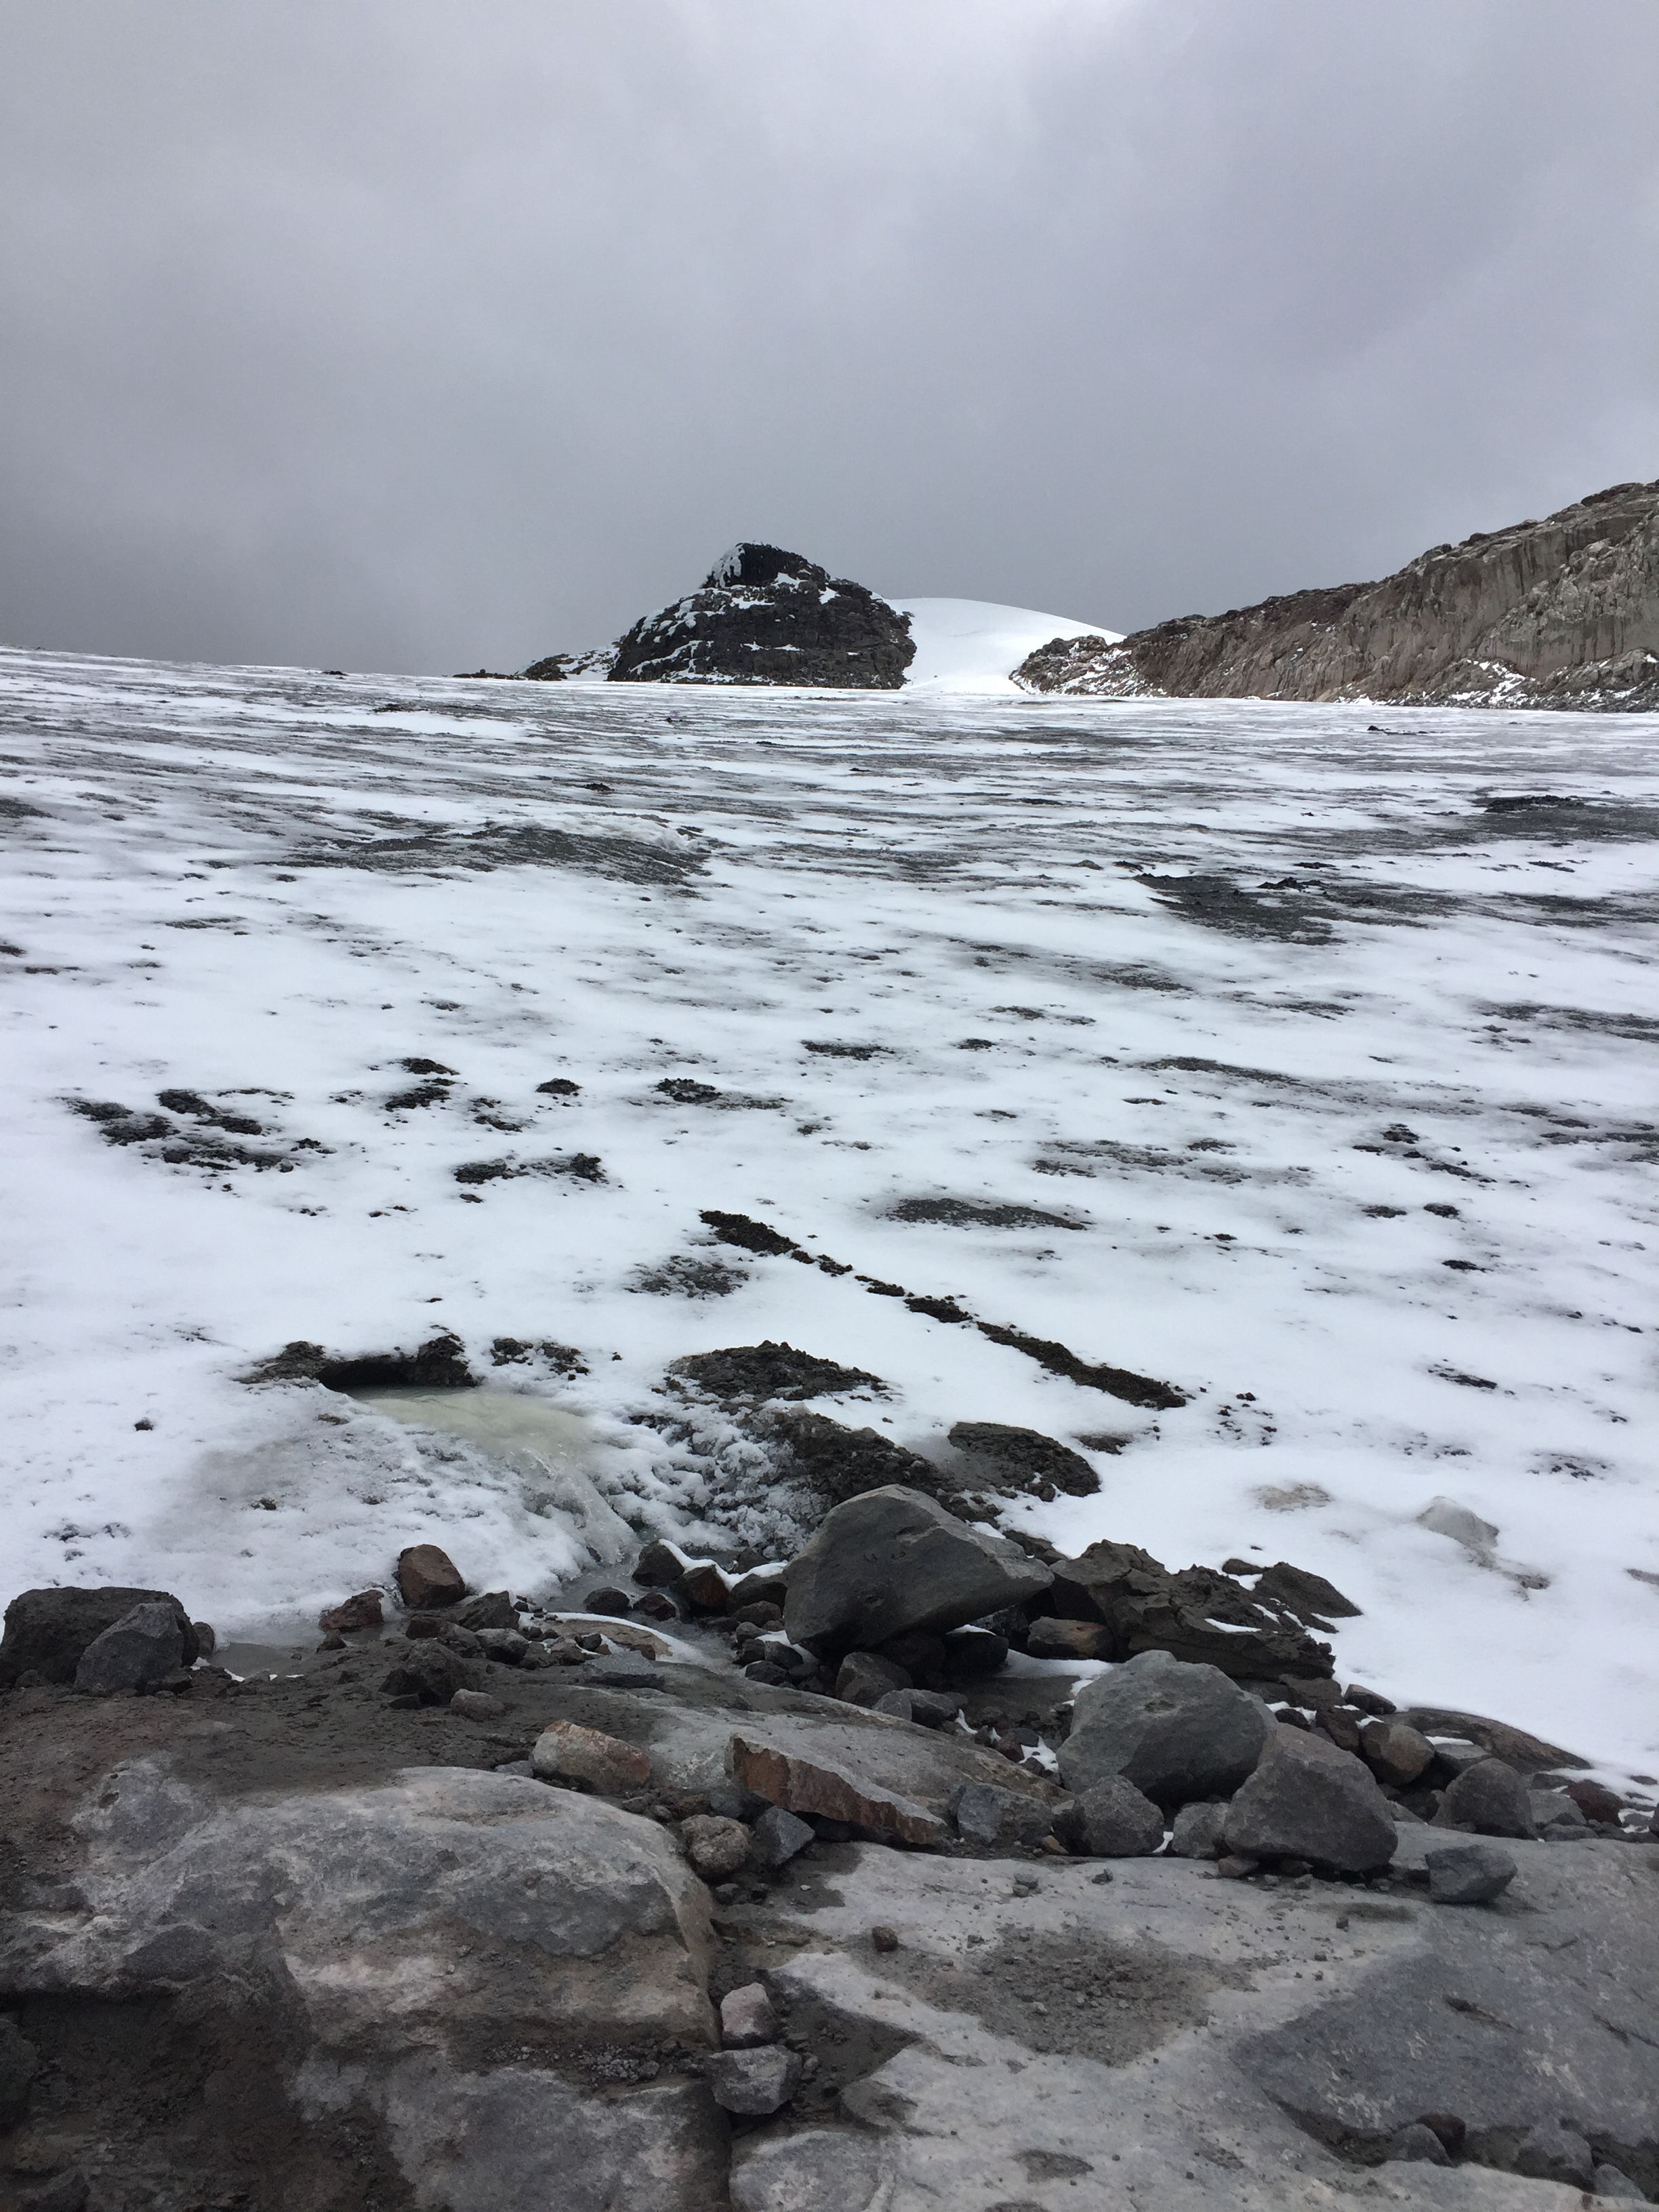 A sharp peak extends out of the glacier at the top of the san isabela nevado. There is still quite a bit of glacier to see, dotted with rocks throughout it.